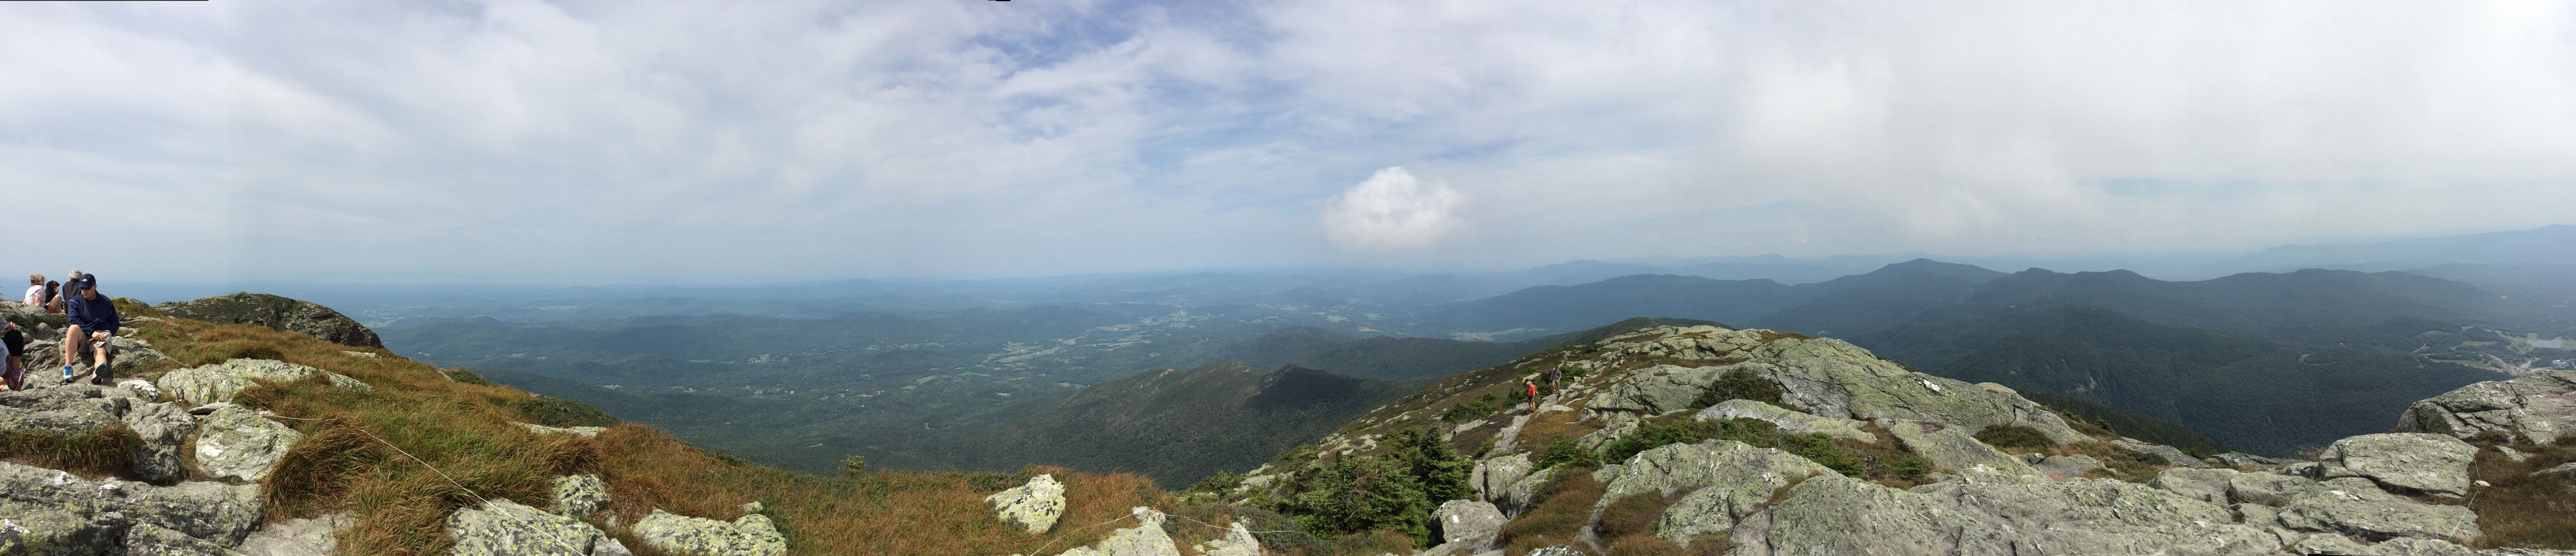 Panorama view from top of Mount Mansfield